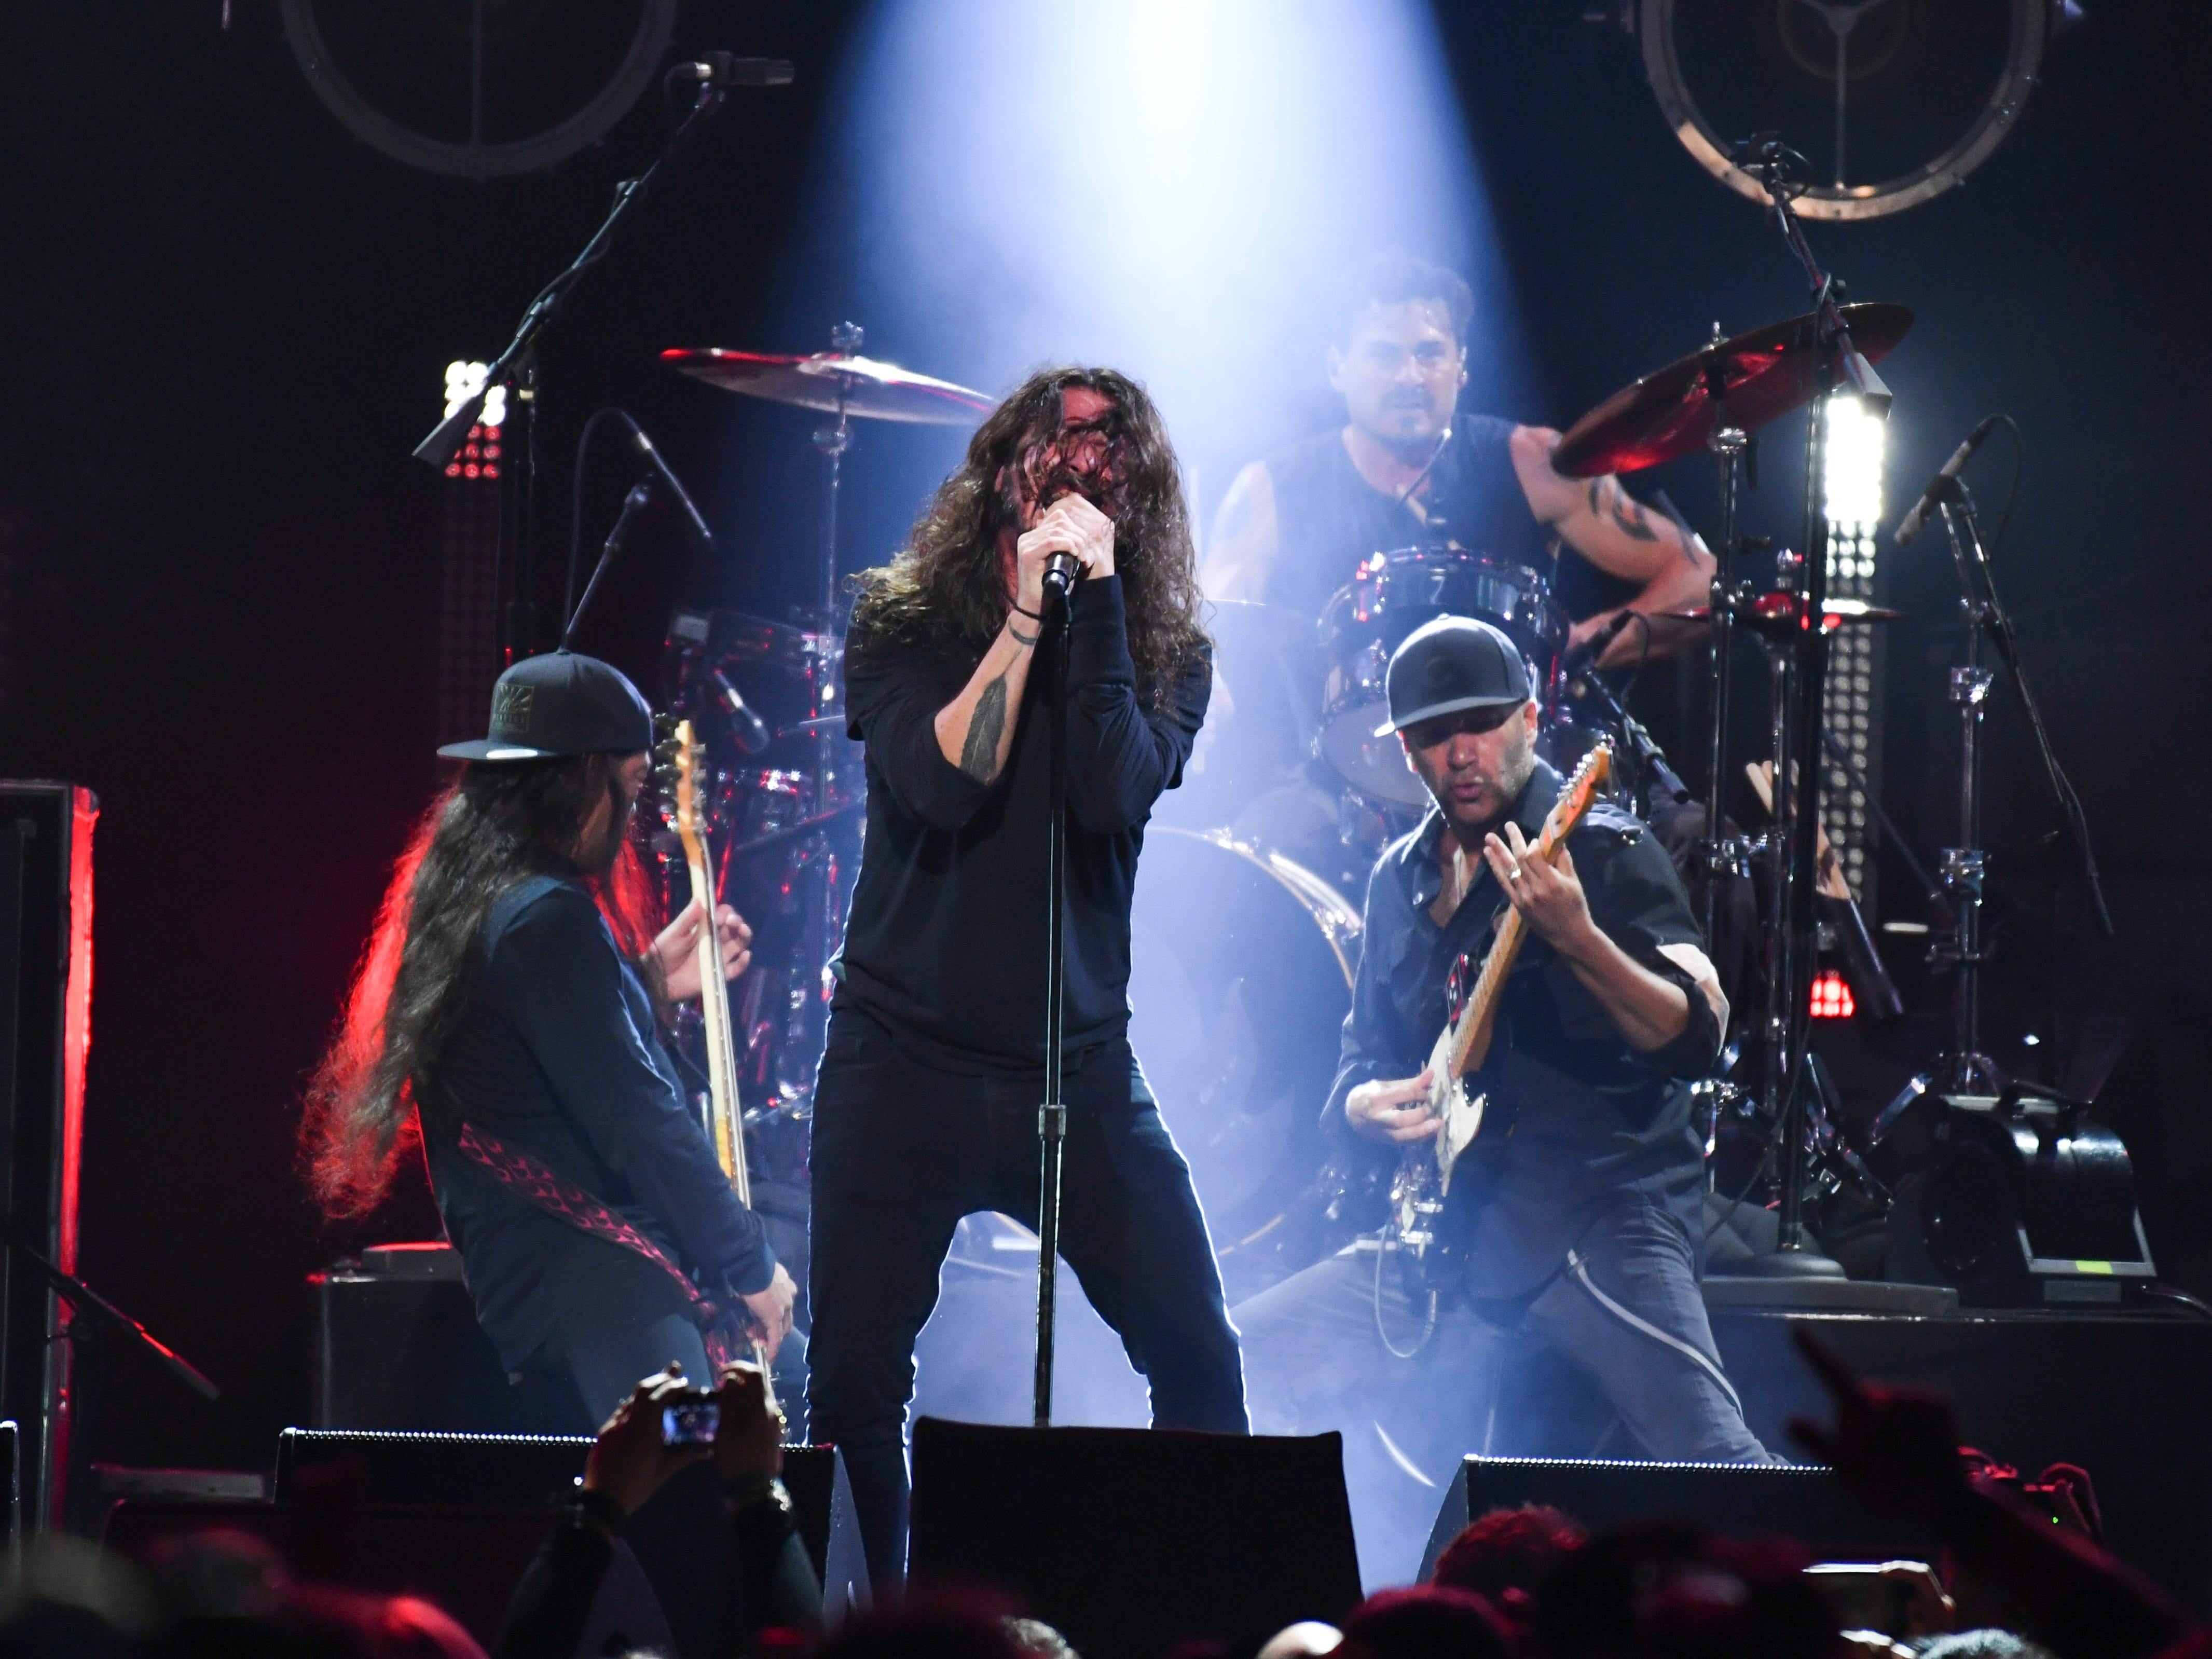 Big moments from Chris Cornell tribute show: Miley Cyrus impresses, Soundgarden reunites